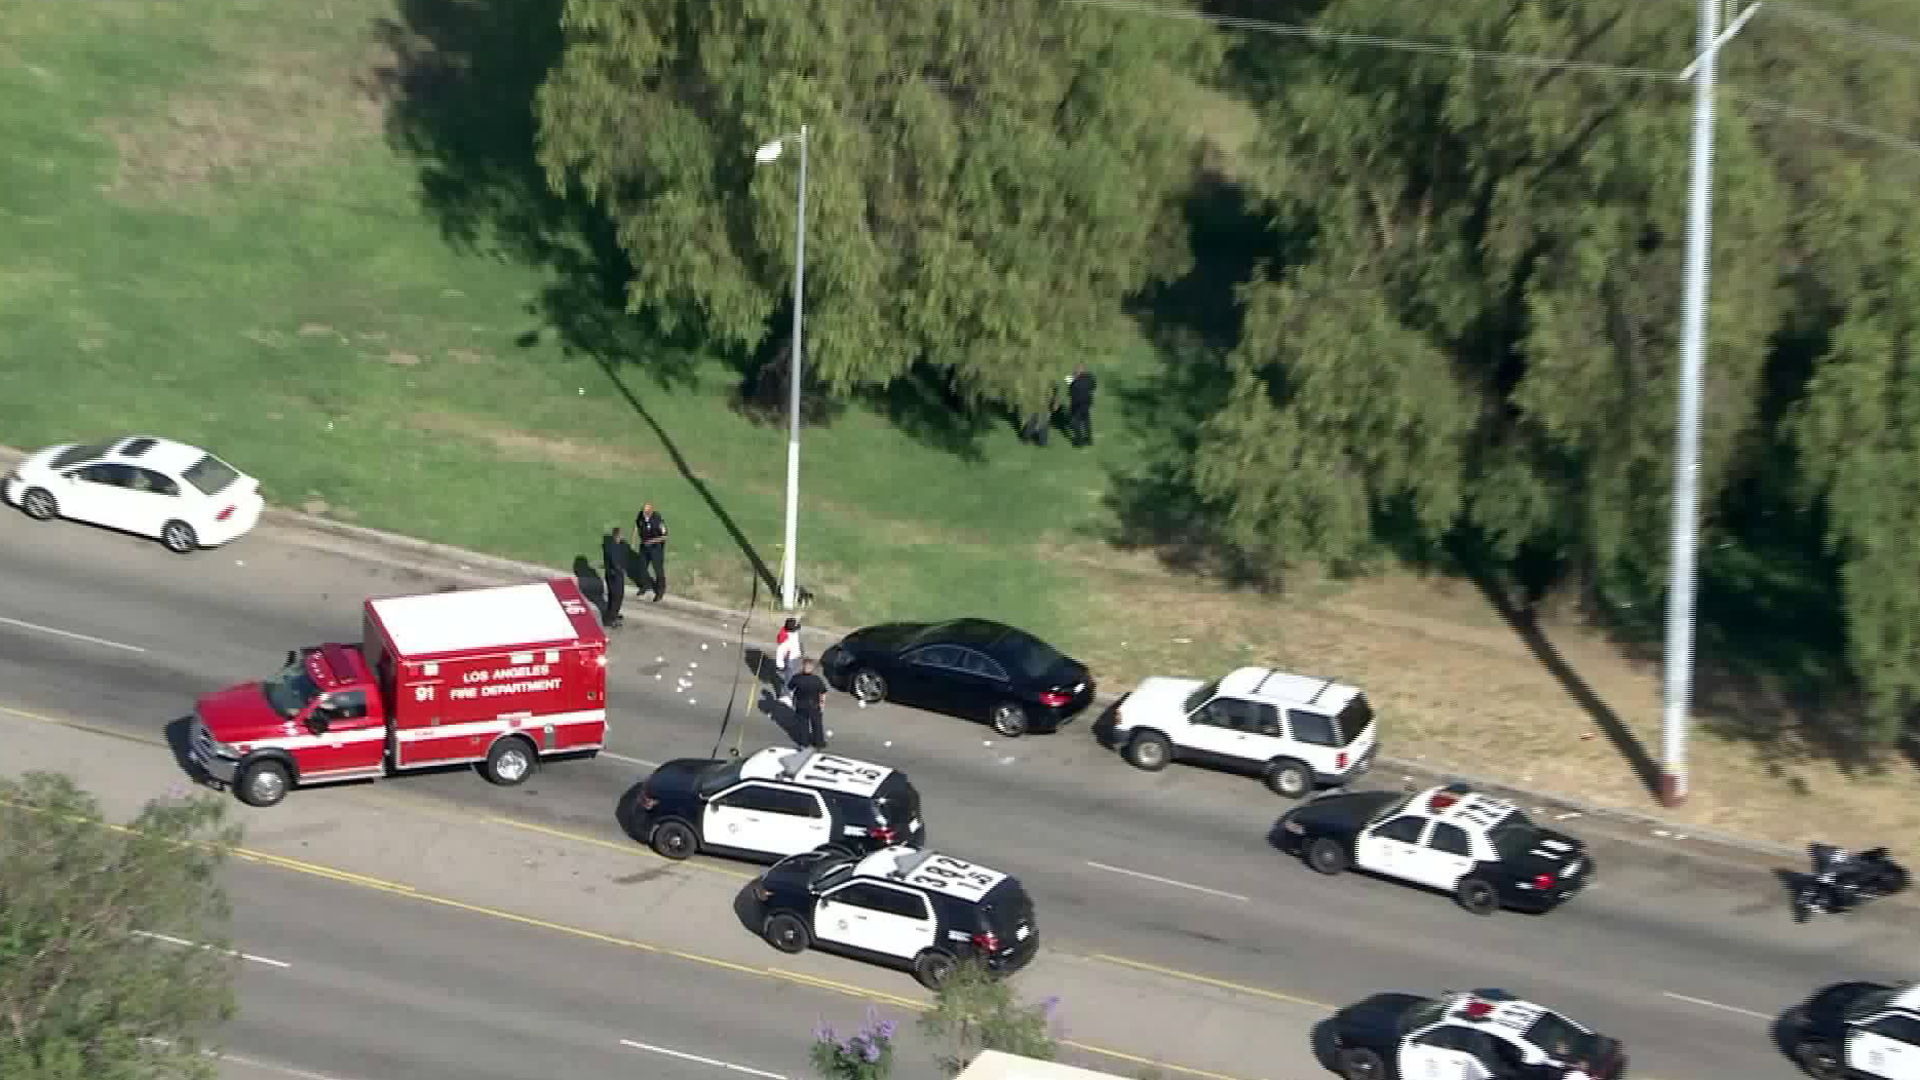 Several LAPD units respond to a shooting in the Hansen Dam area on June 29, 2020. (KTLA)